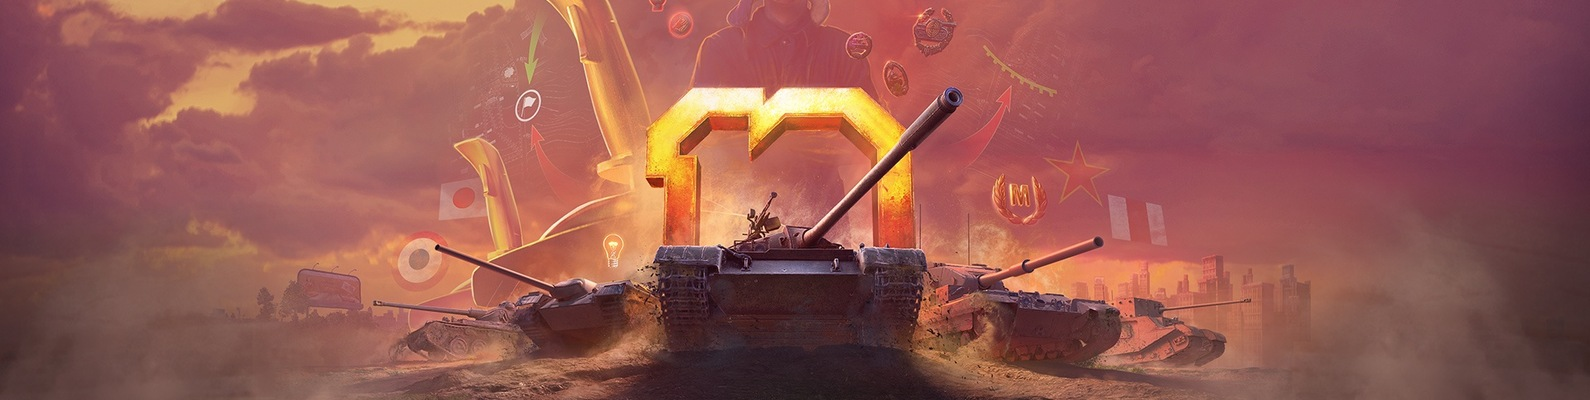 Клип world of tanks игру онлайн бесплатно без регистрации и смс